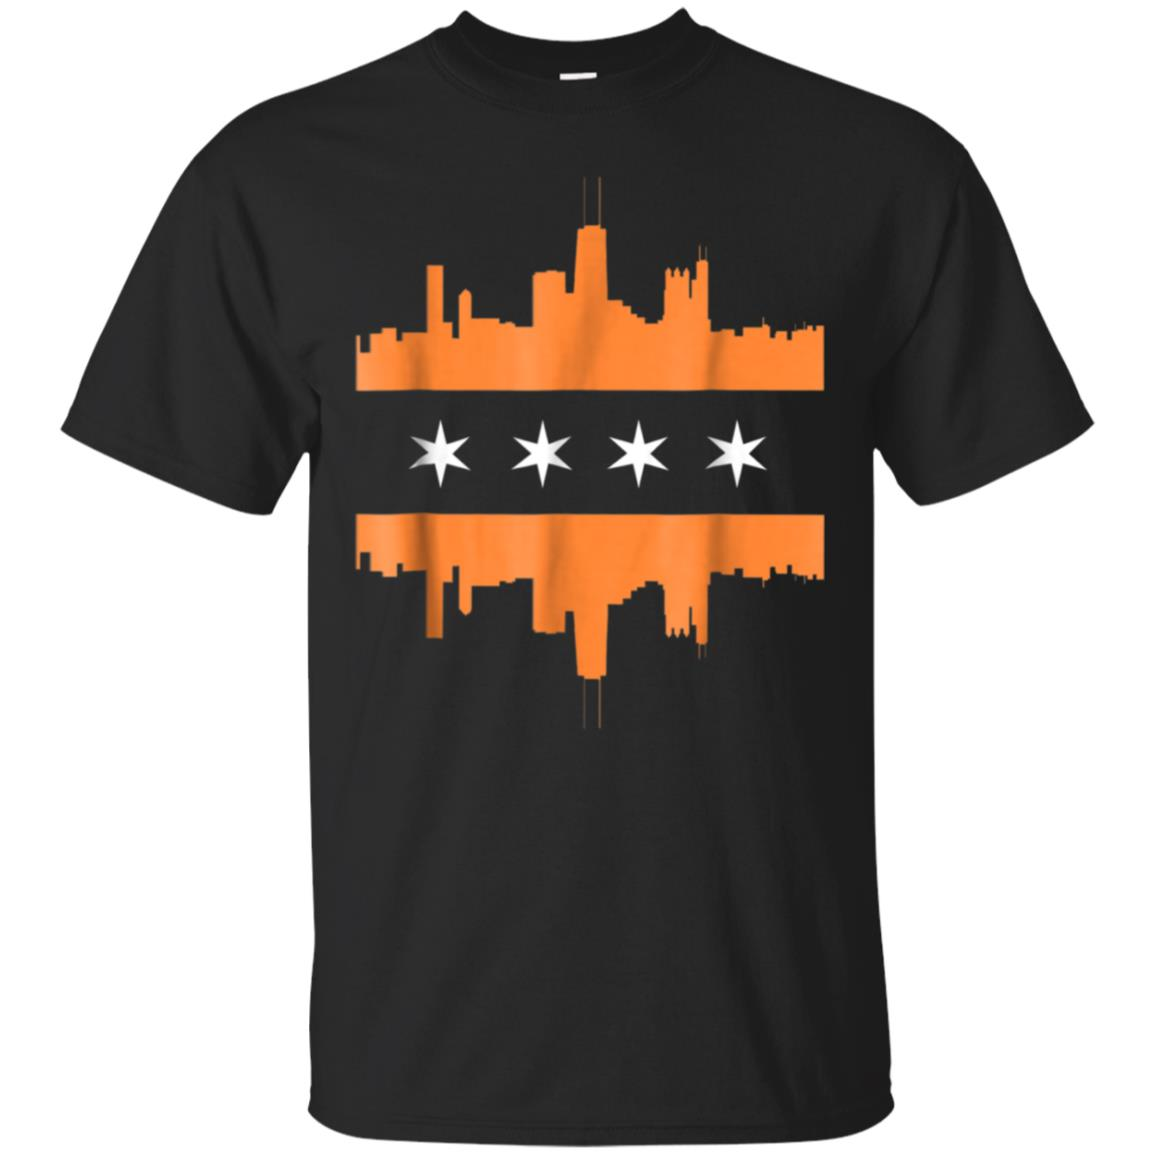 CHICAGO SKYLINE Orange St Patricks Day Ireland Irish T Shirt 99promocode